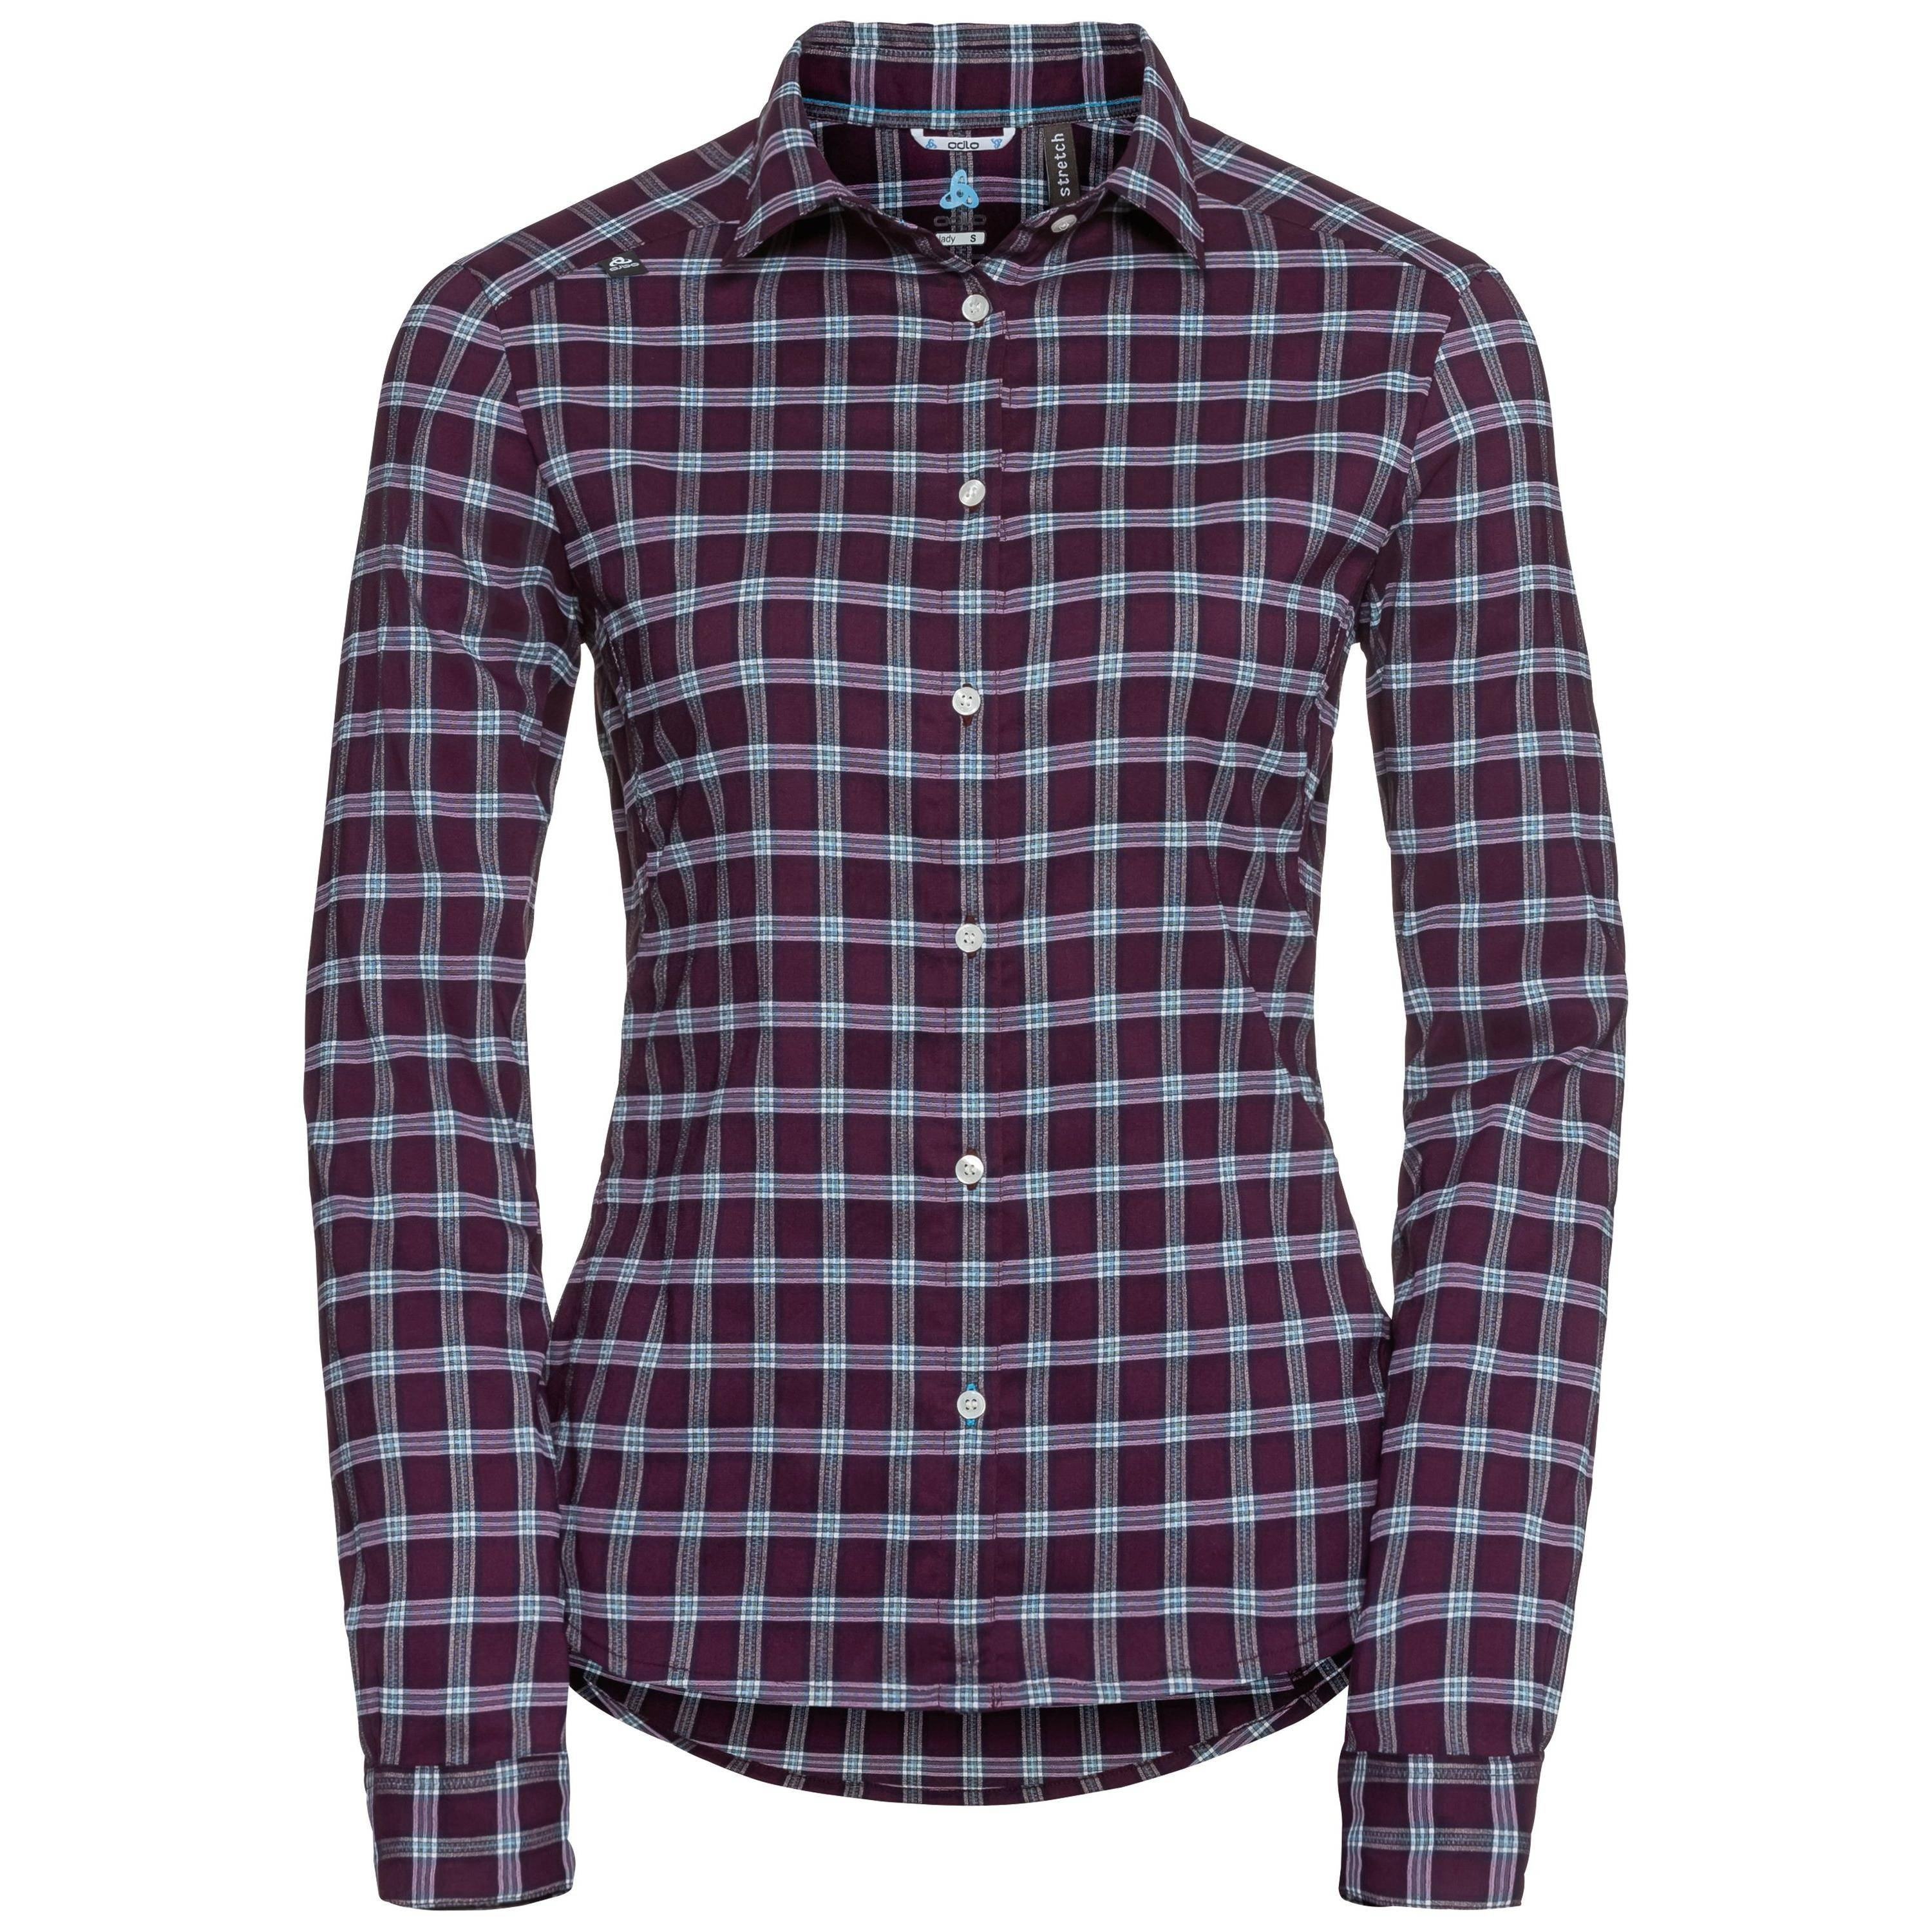 Odlo Burnaby manches longues avec BOUTONS pickled beet - peacoat - check taille: XS